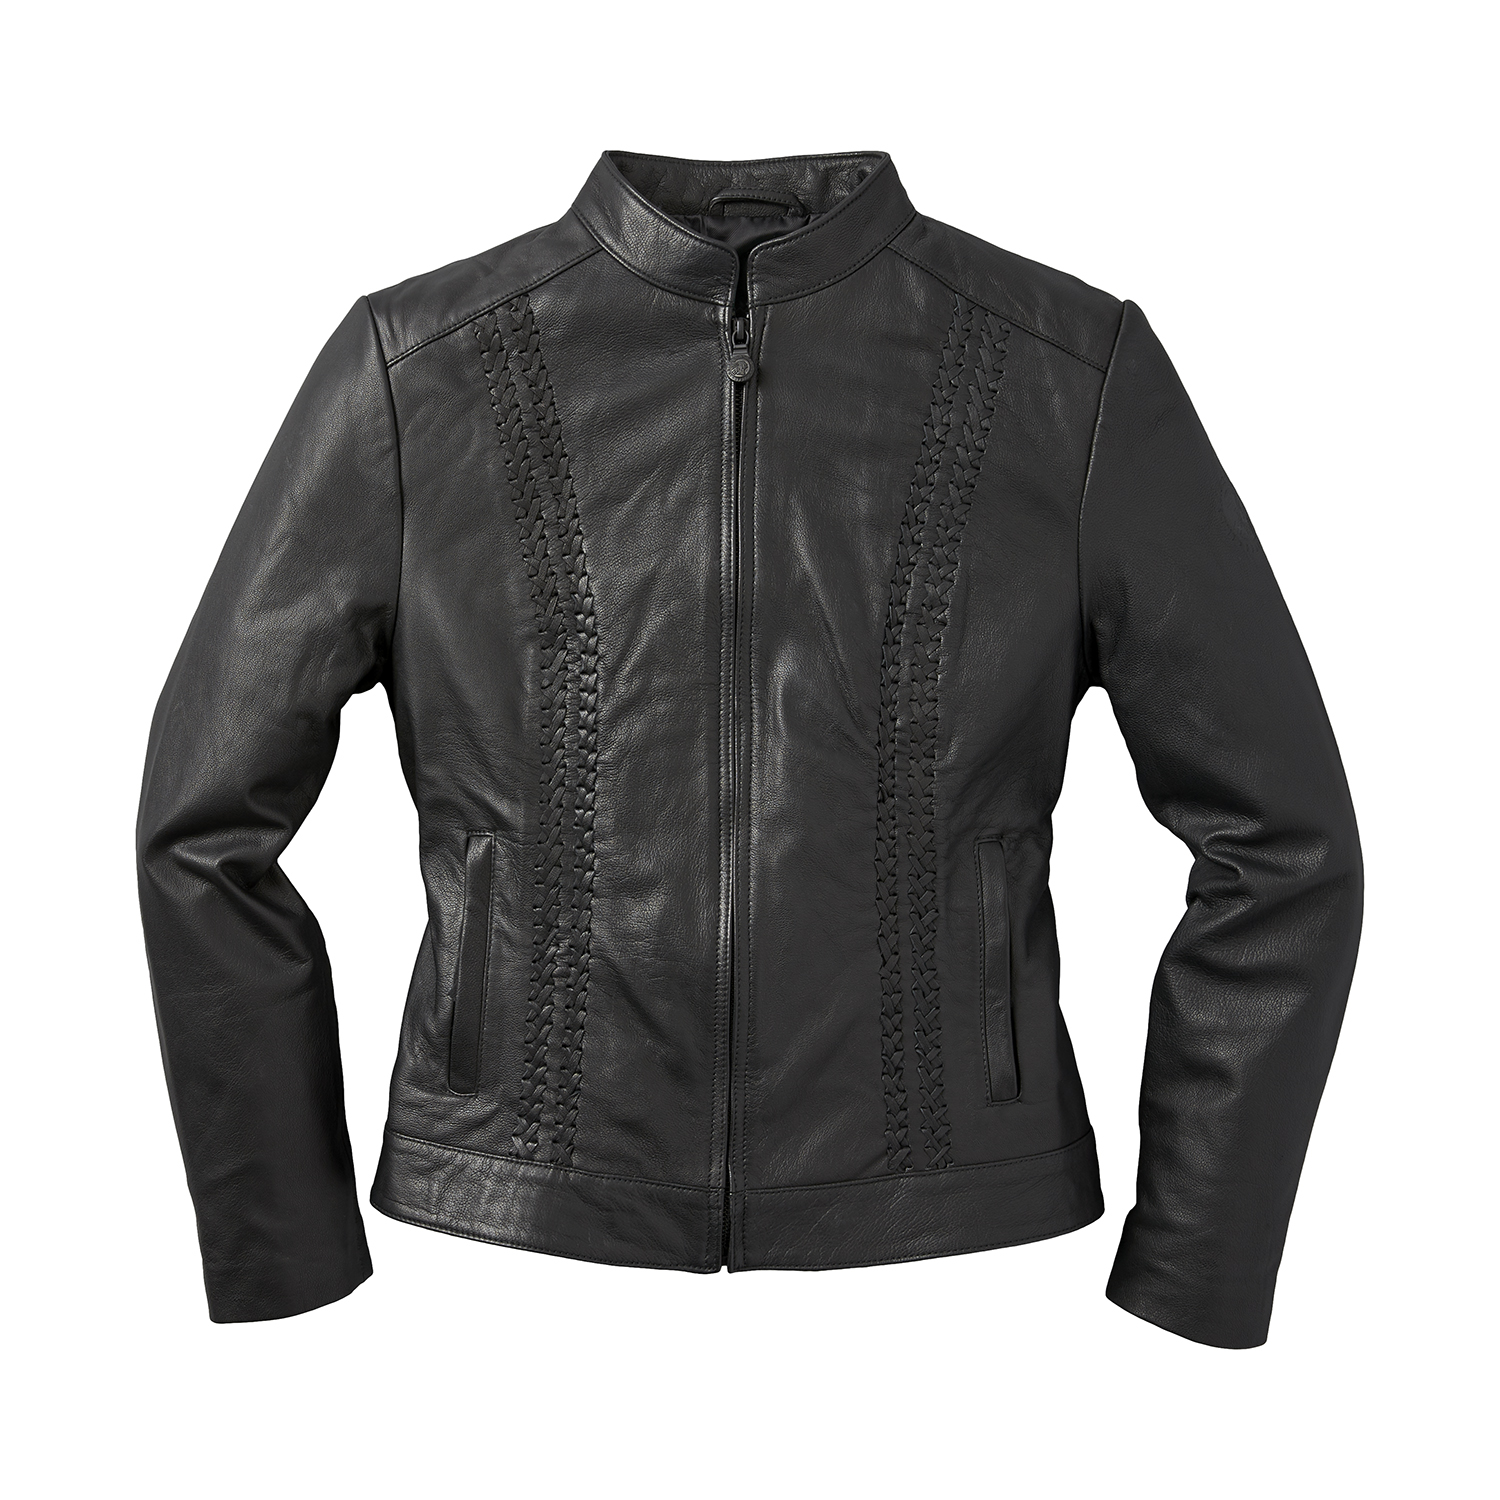 miniature 12 - Indian Motorcycle Women's Leather Charlotte Casual Jacket, Black